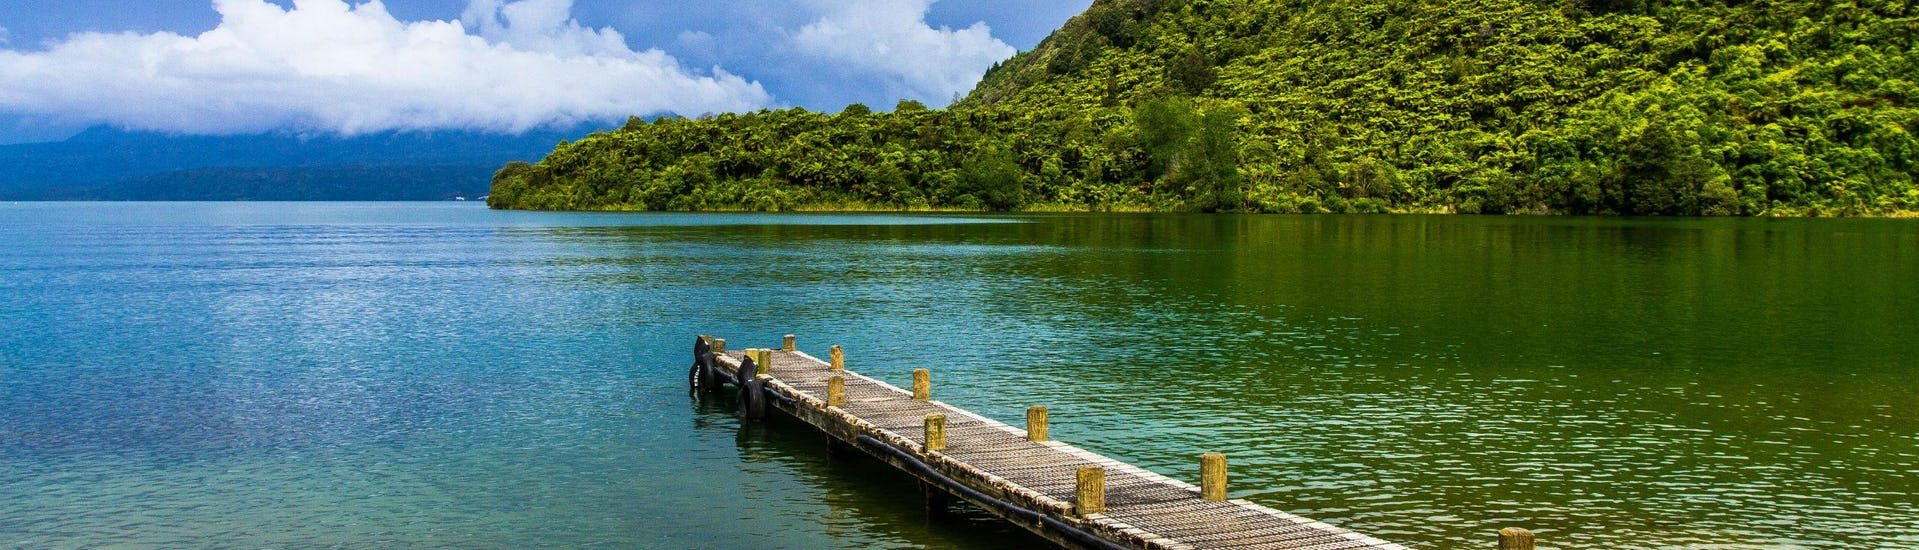 An image of a jetty leading into the clear waters of Lake Tarawera in the Rotorua region, a popular hotspot for kayaking in New Zealand.